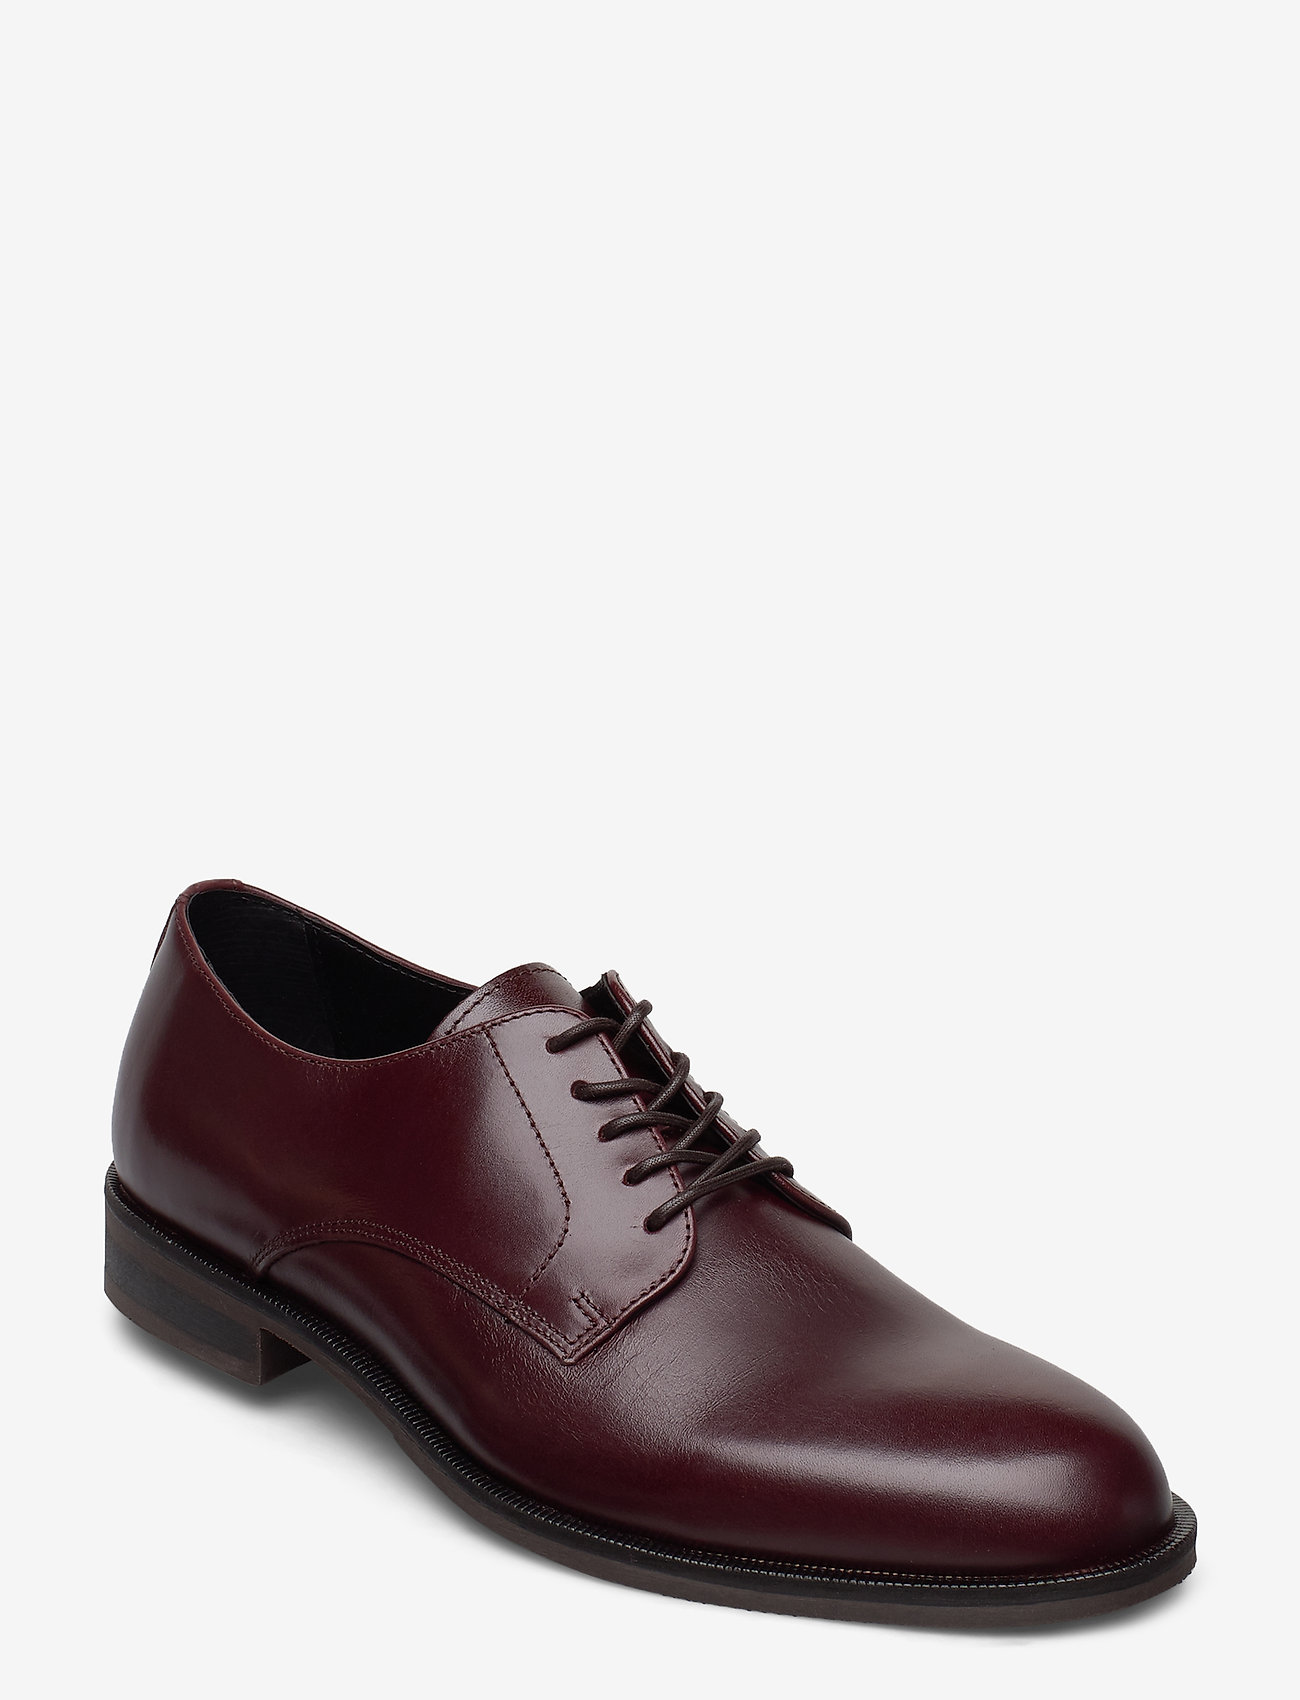 Selected Homme - SLHLOUIS LEATHER DERBY SHOE B - veterschoenen - chestnut - 0